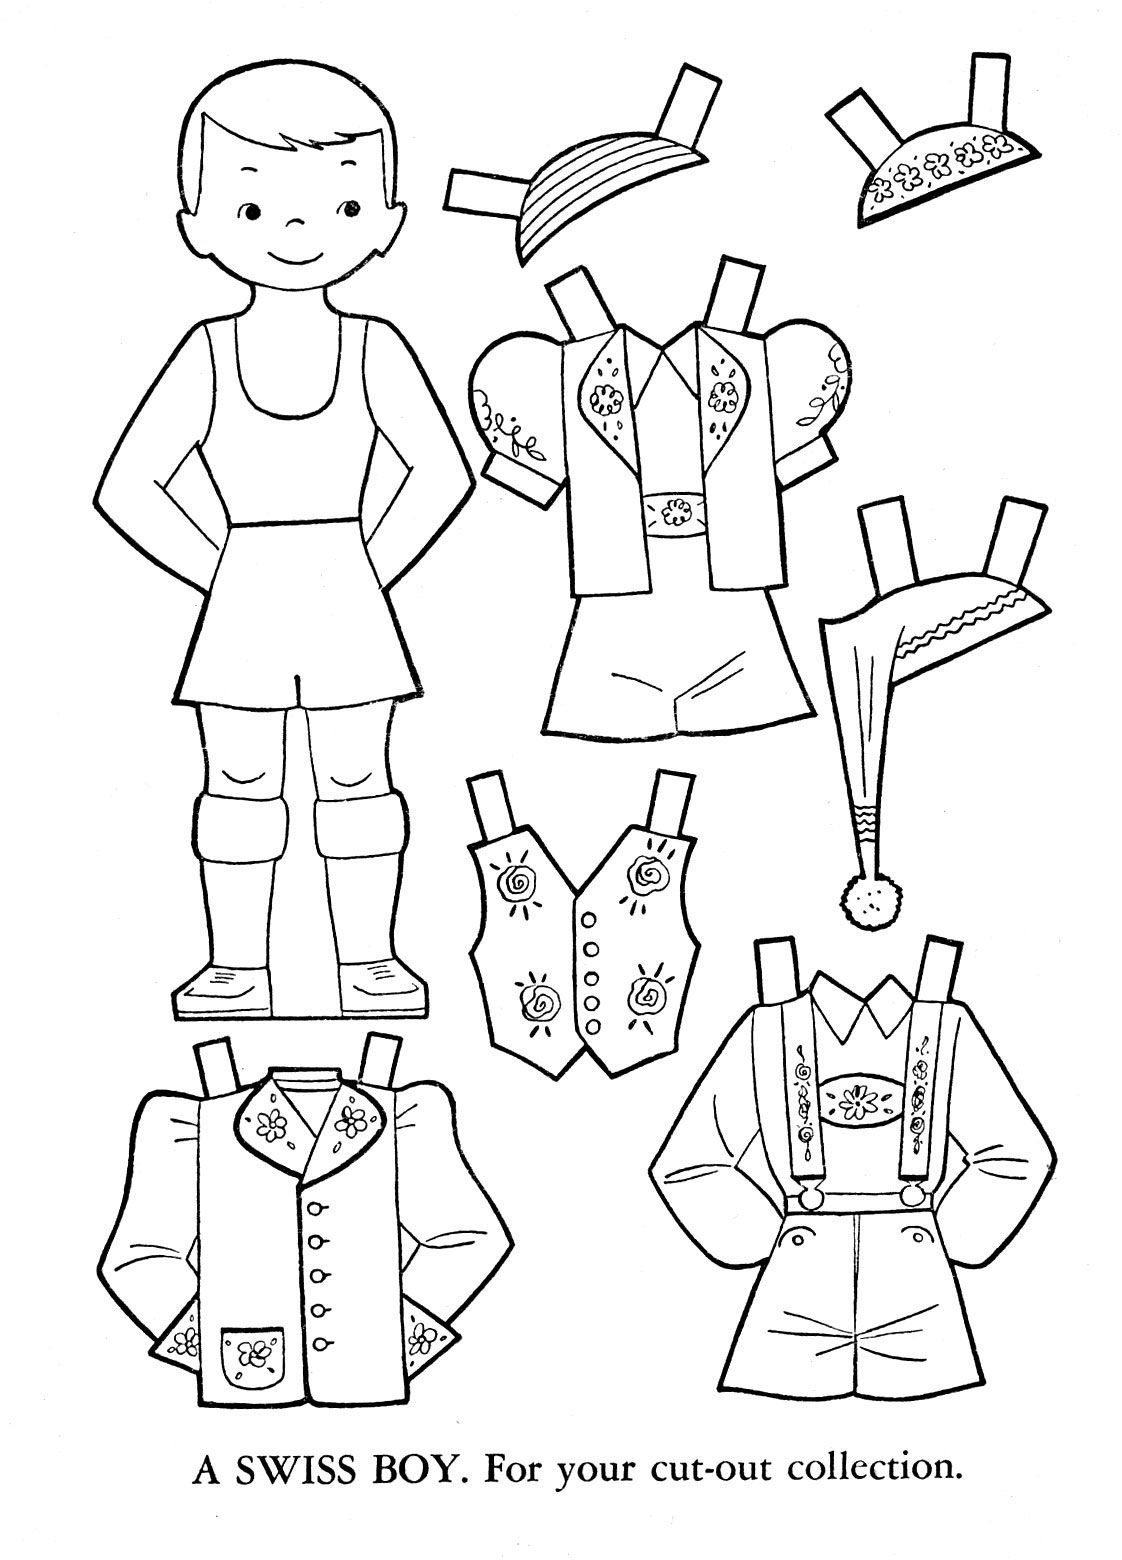 dress up paper dolls printable make your own paper dolls kiwi families up paper printable dolls dress